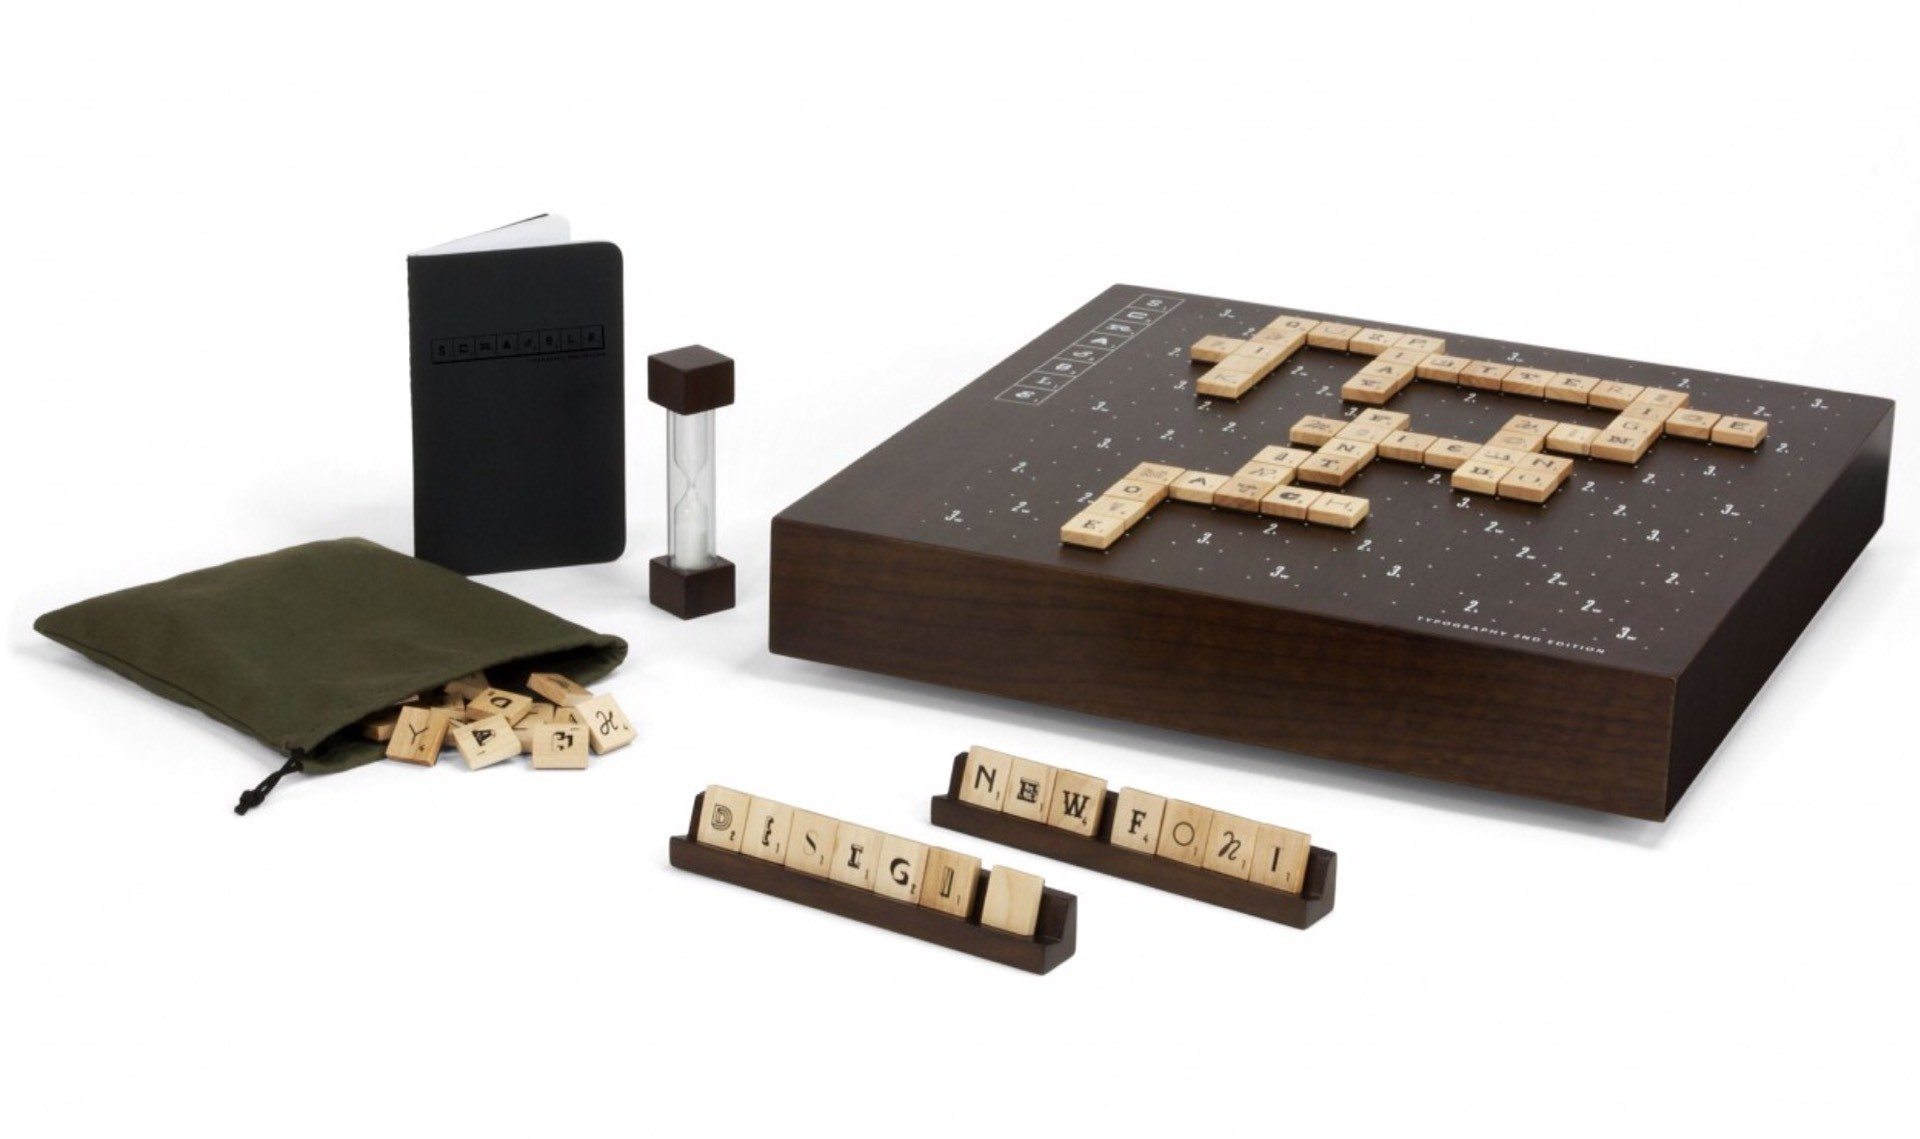 Andrew Capener's Scrabble Typography, 2nd Edition. ($182)